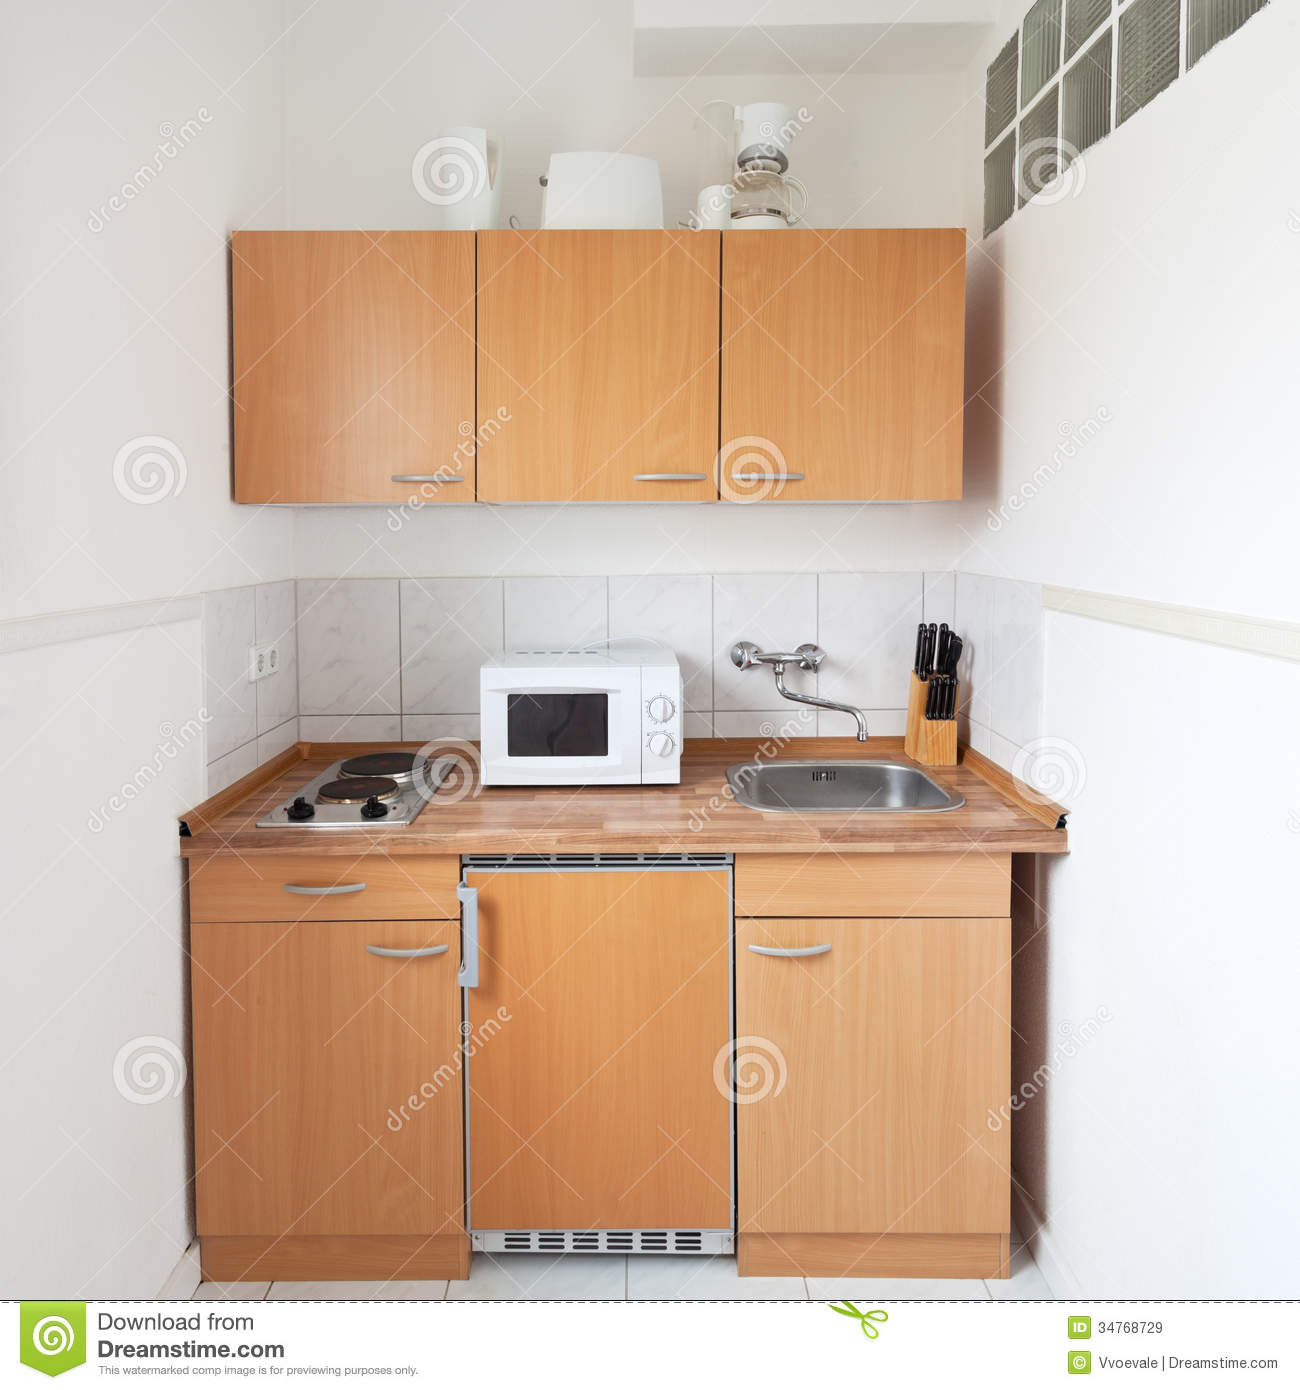 simple kitchen with furniture set stock image image ForKitchen Set Simple